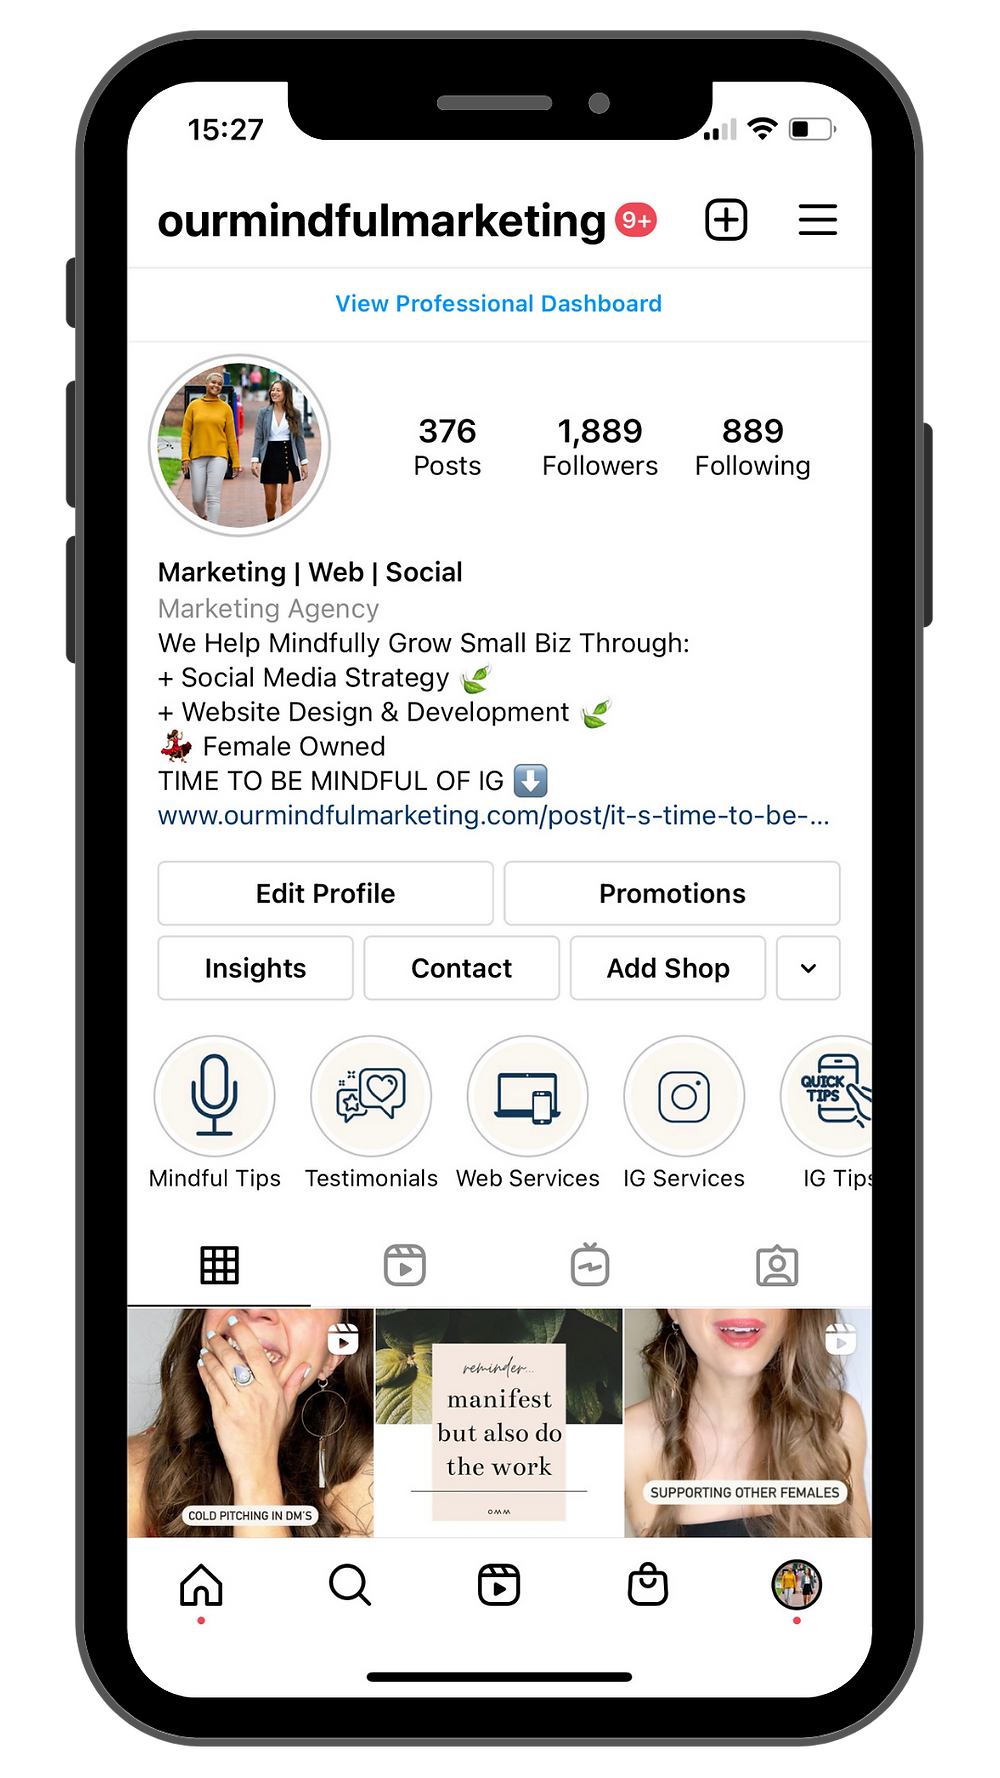 An image of a screenshot the main feed of @ourmindfulmarketing's profile on Instagram.